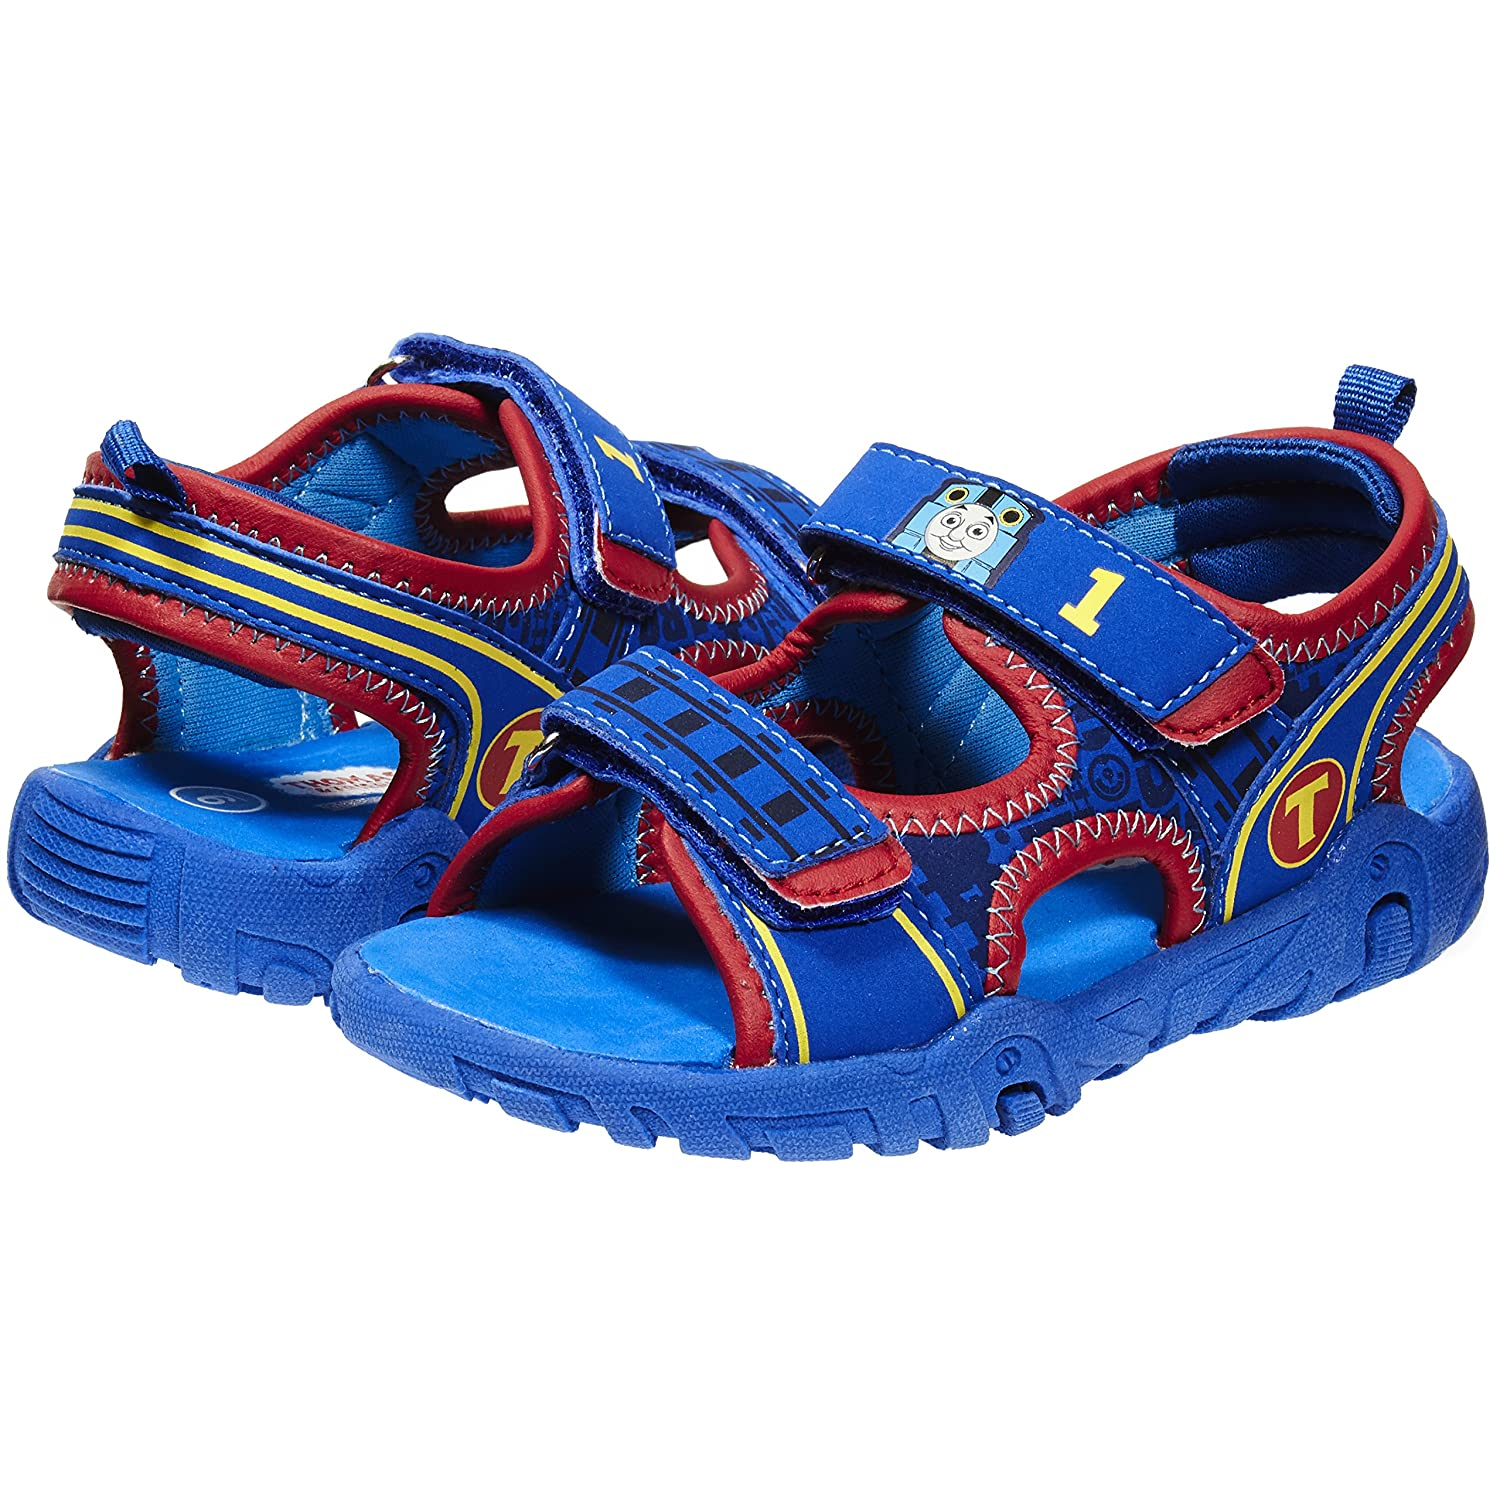 11e7fd1582574 Thomas and Friends TPR Sole Sandals for Boys